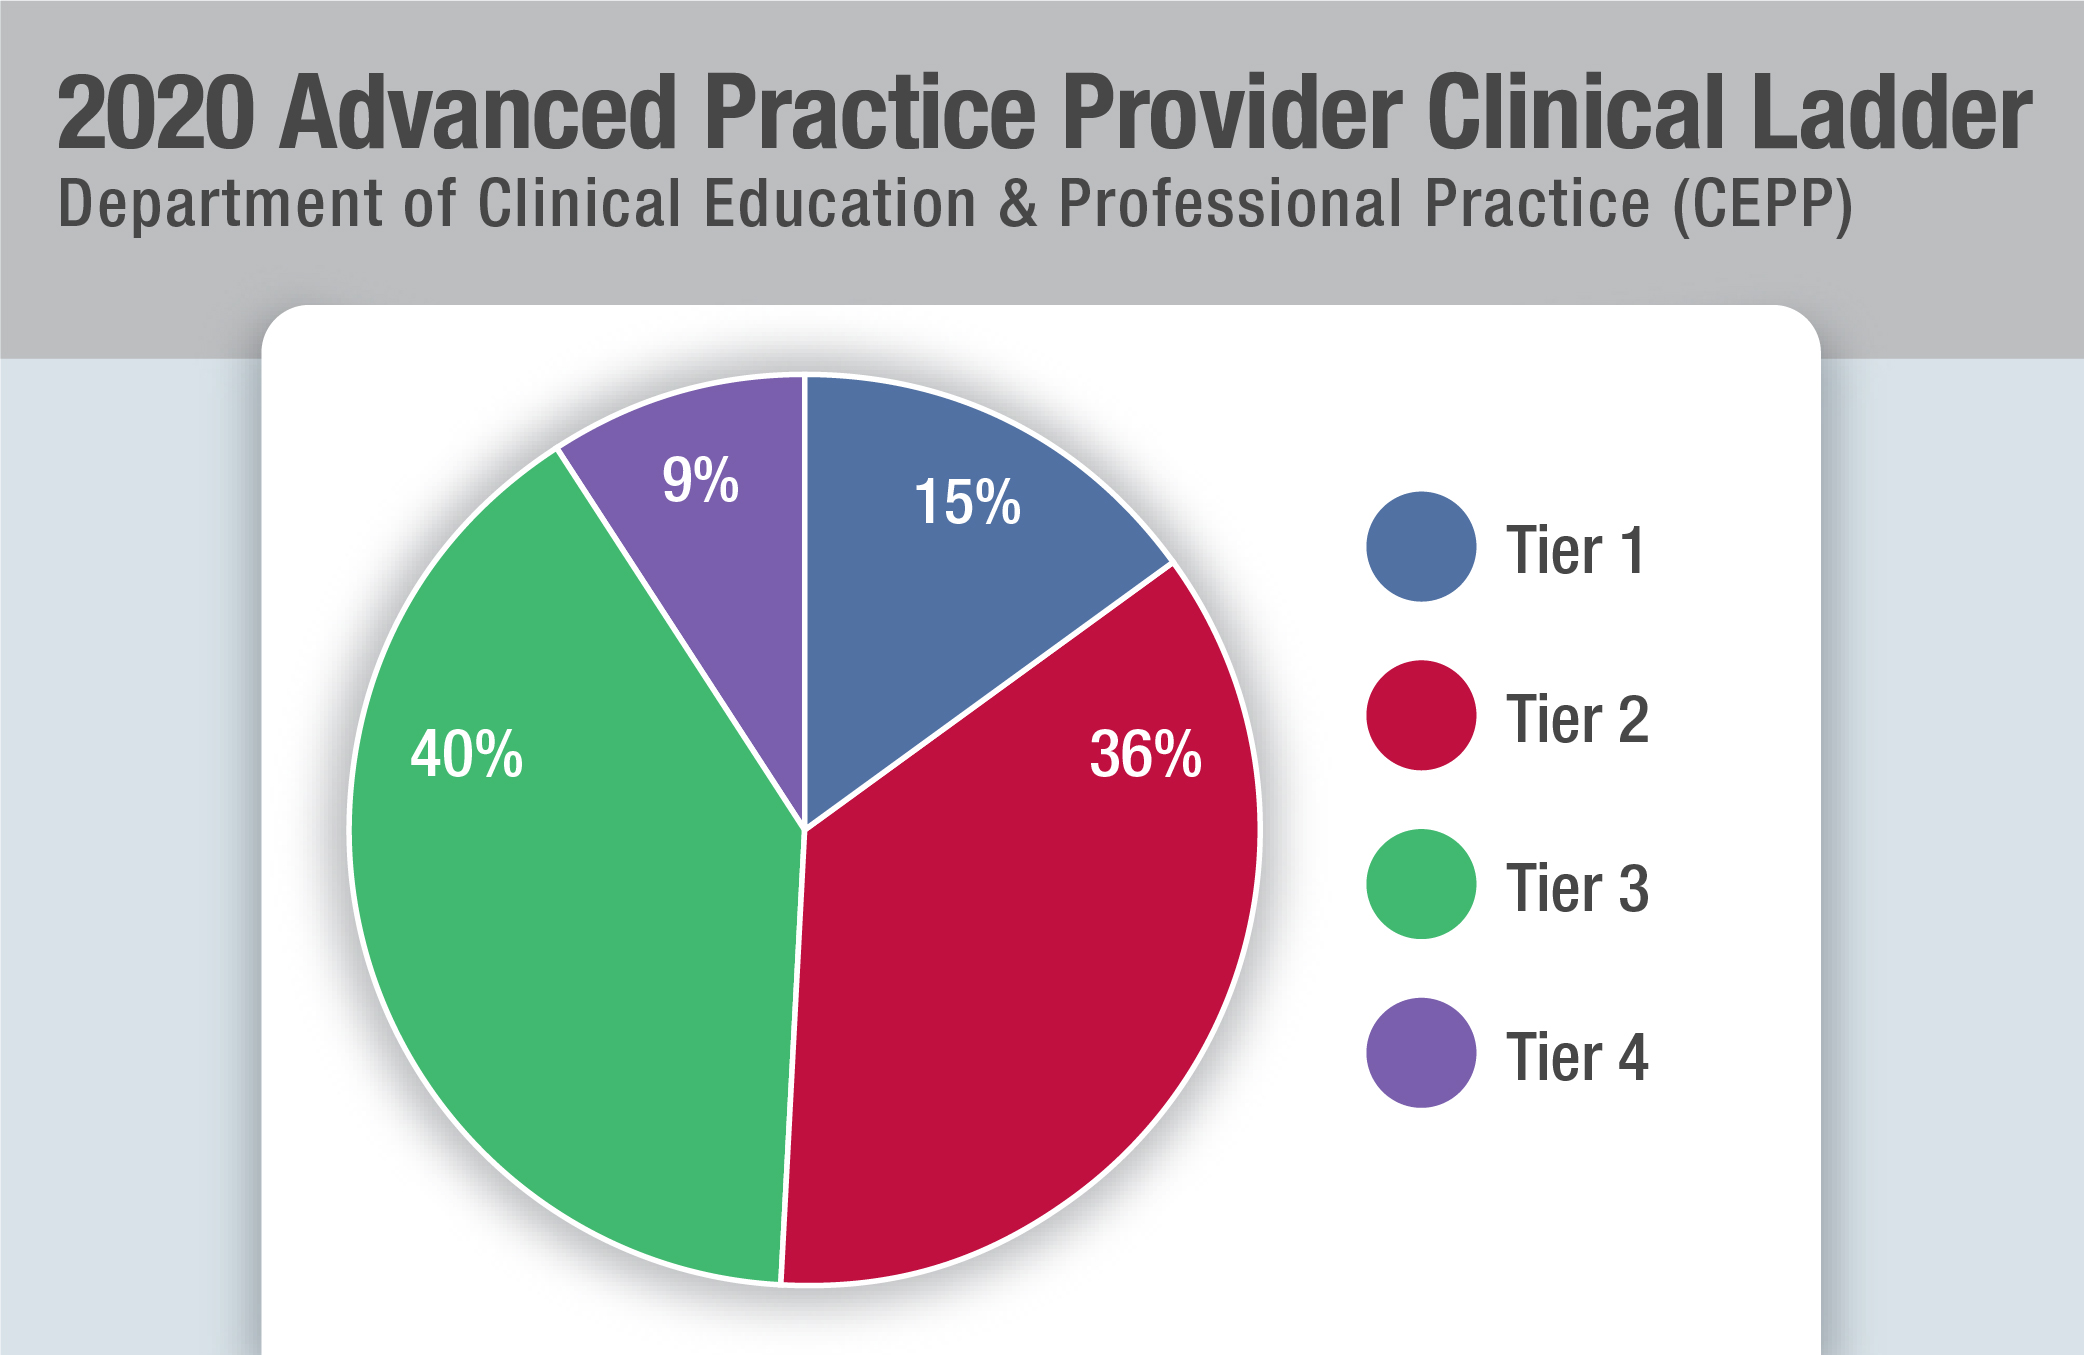 2020 Advanced Practice Provider Clinical Ladder Graphic